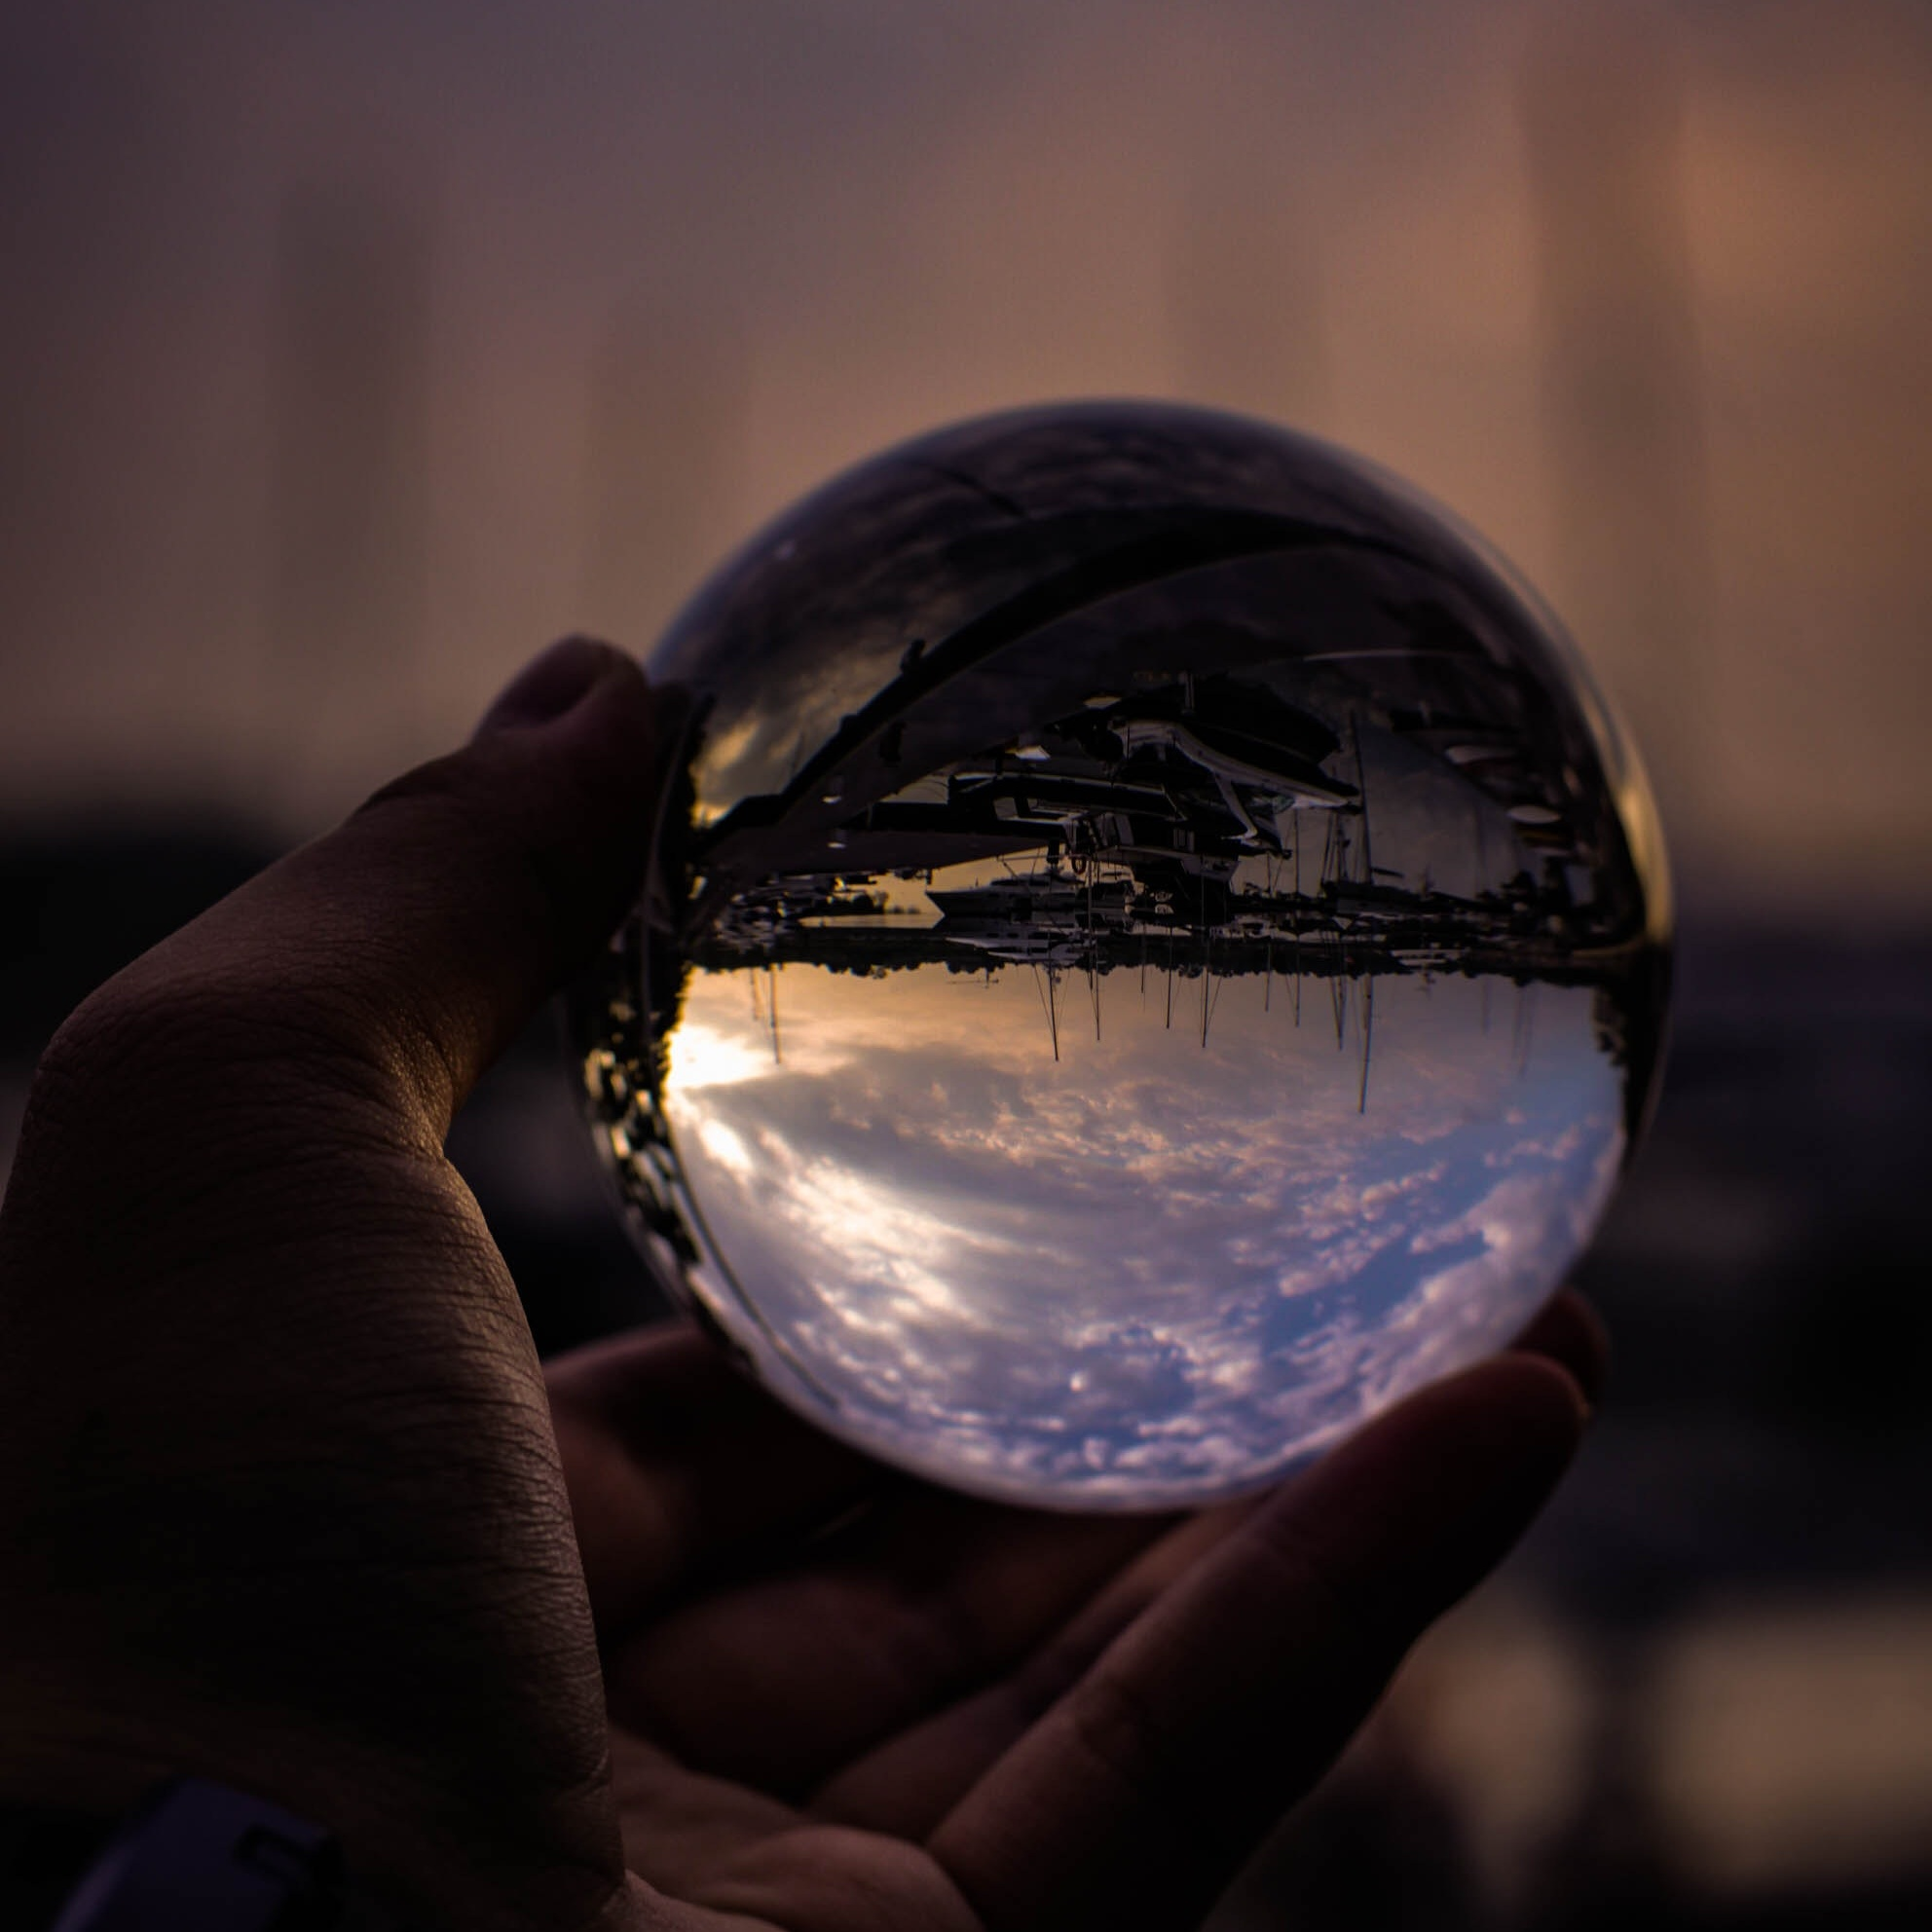 It seems like every time I look into my crystal ball, all I see is an upside down world. #deepthoughts